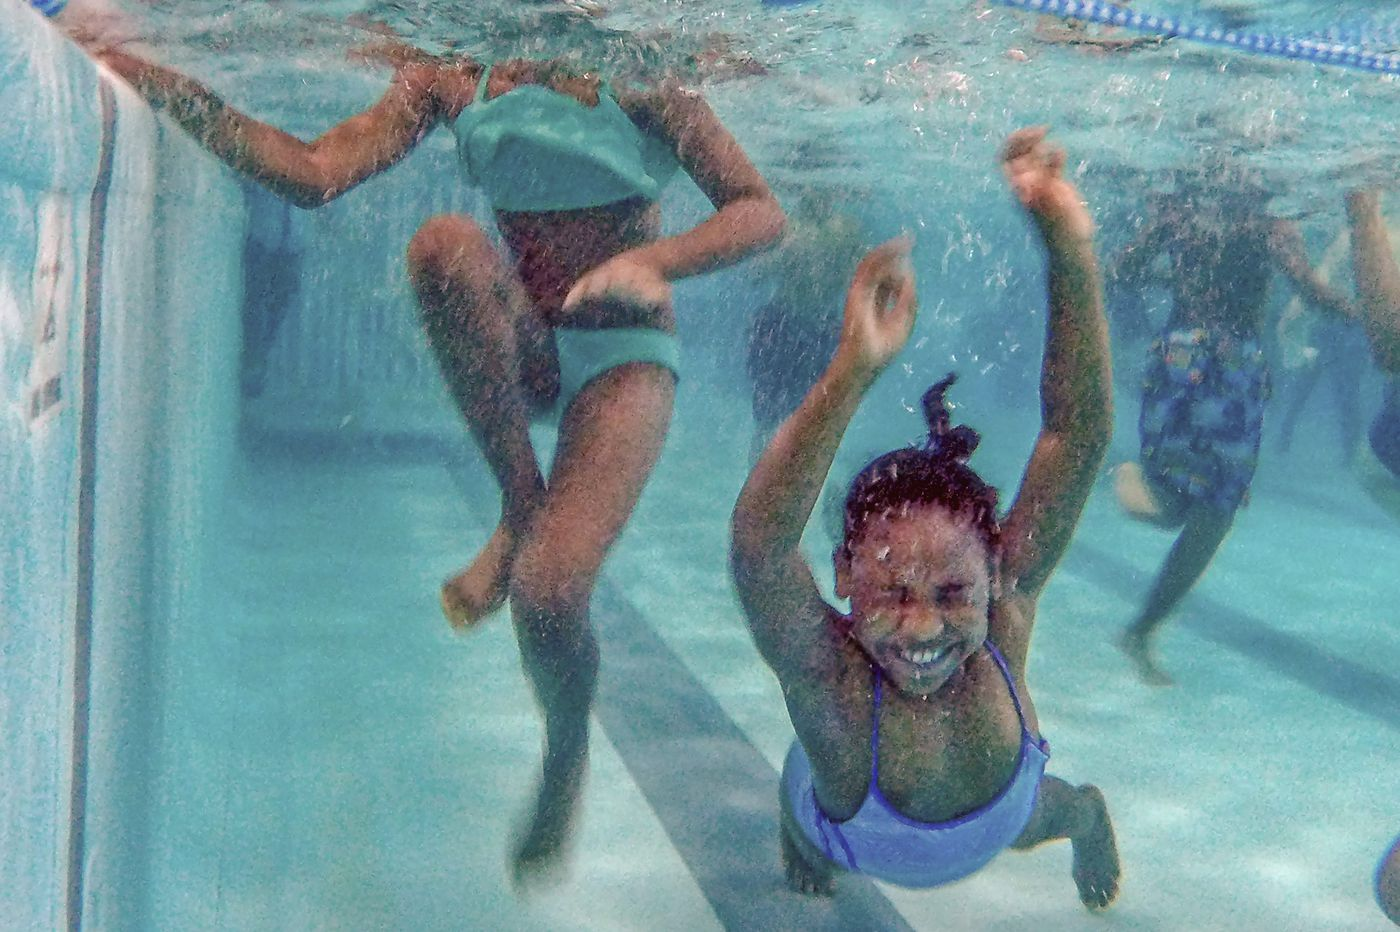 Many U.S. kids can't swim and are at risk for drowning